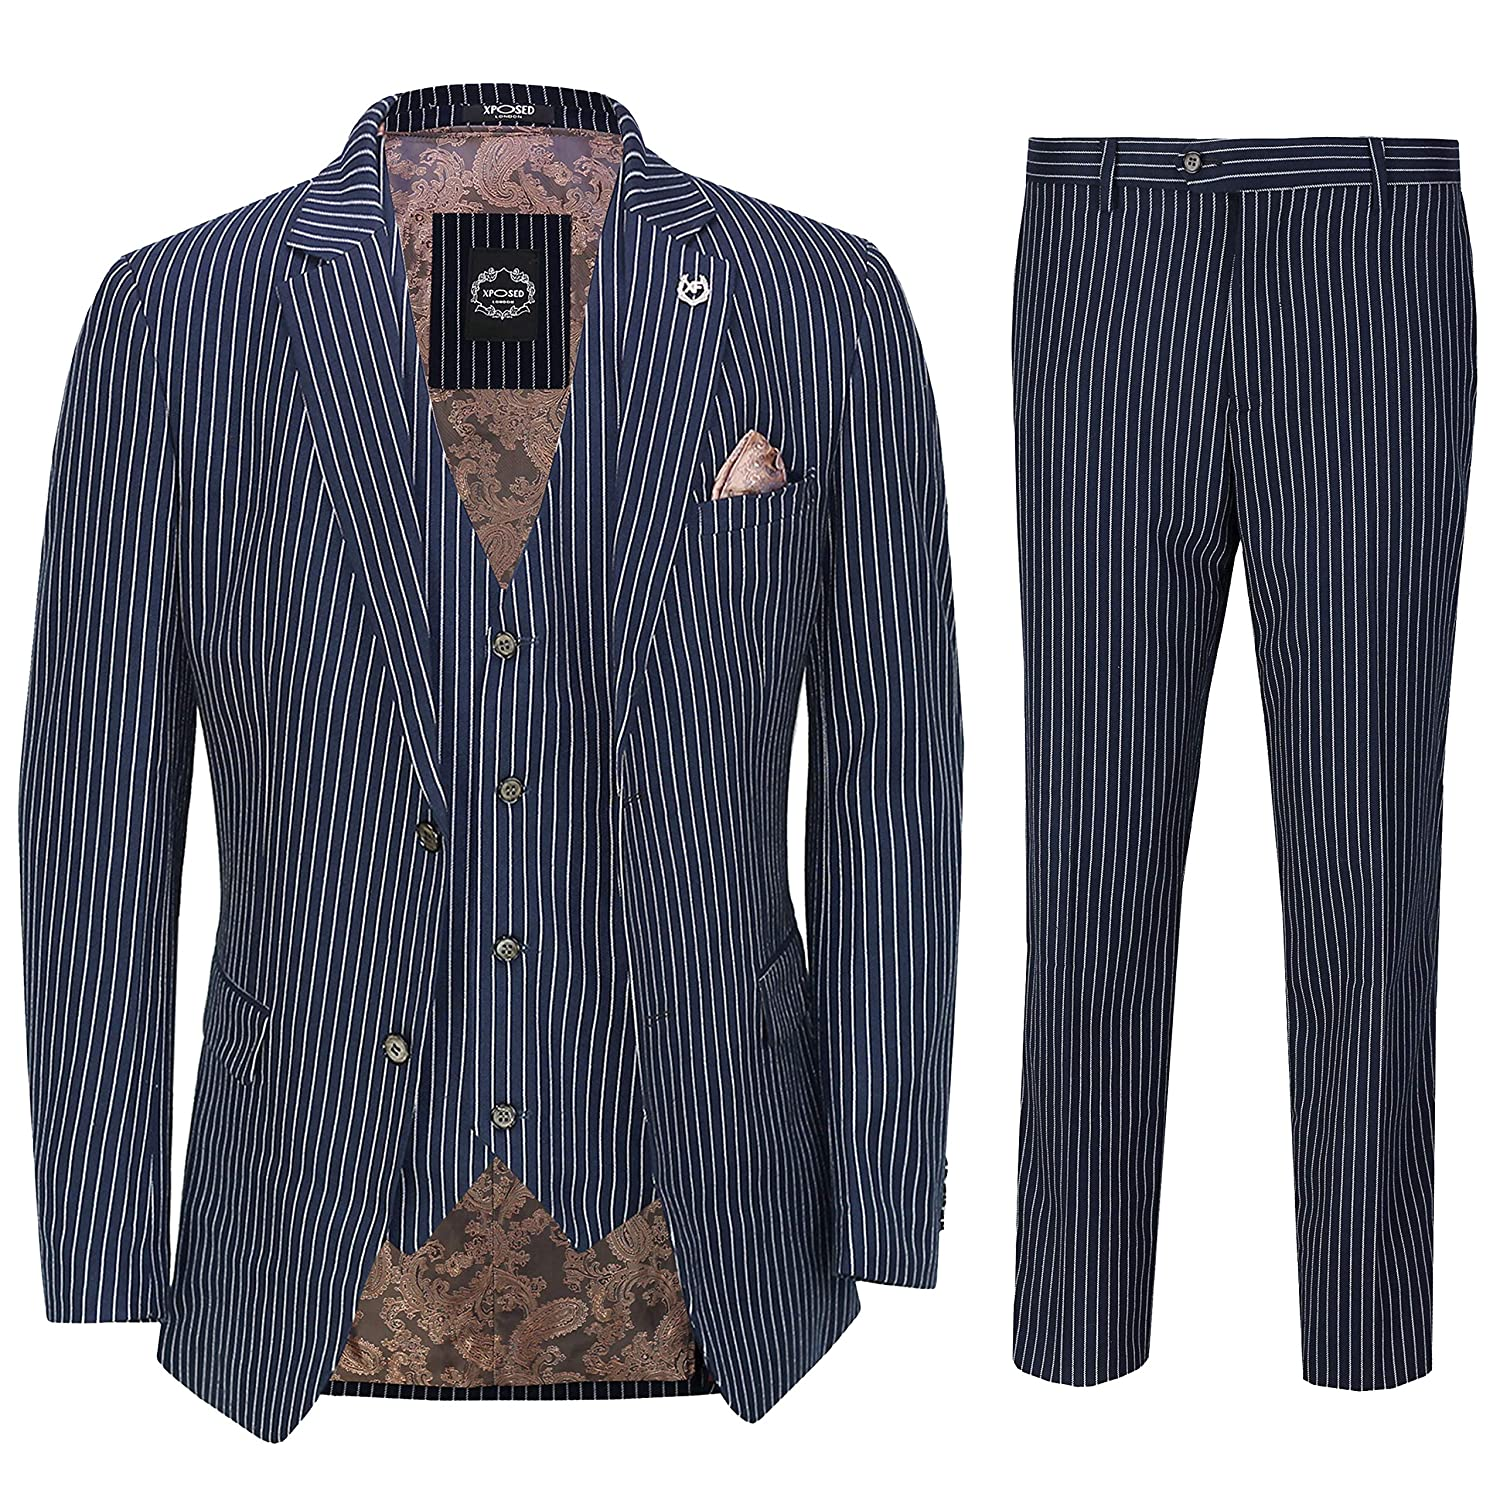 1920s Men's Fashion UK | Peaky Blinders Clothing Xposed Mens Navy Blue 3 Piece Chalk Pinstripe Suit Classic Vintage Tailored Fit 1920s Peaky £104.99 AT vintagedancer.com